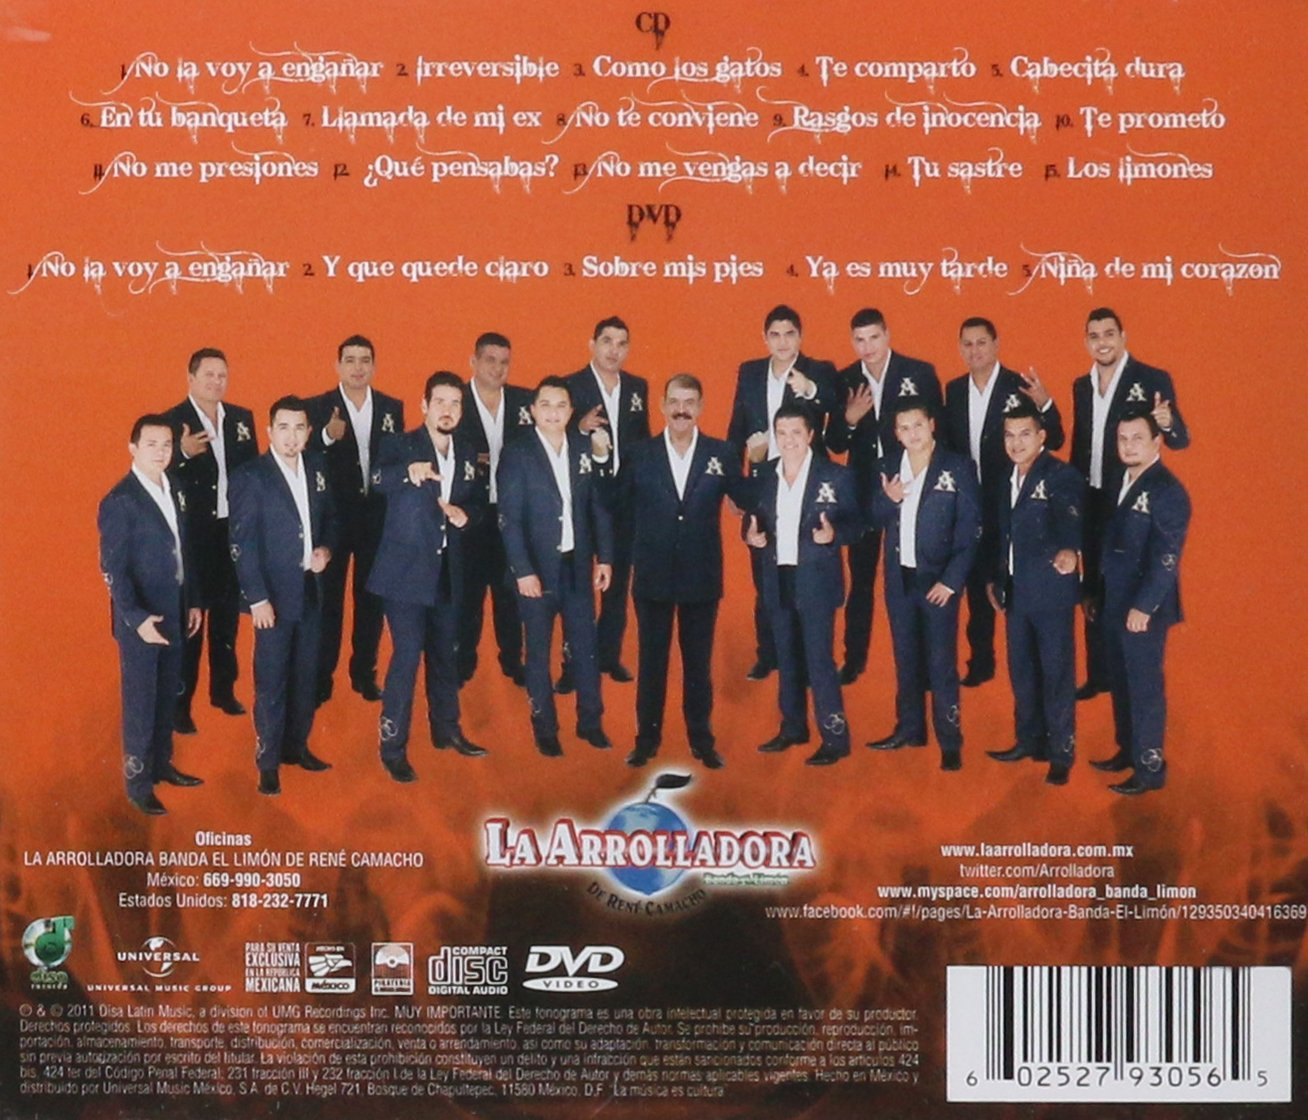 album de la arrolladora irreversible 2012